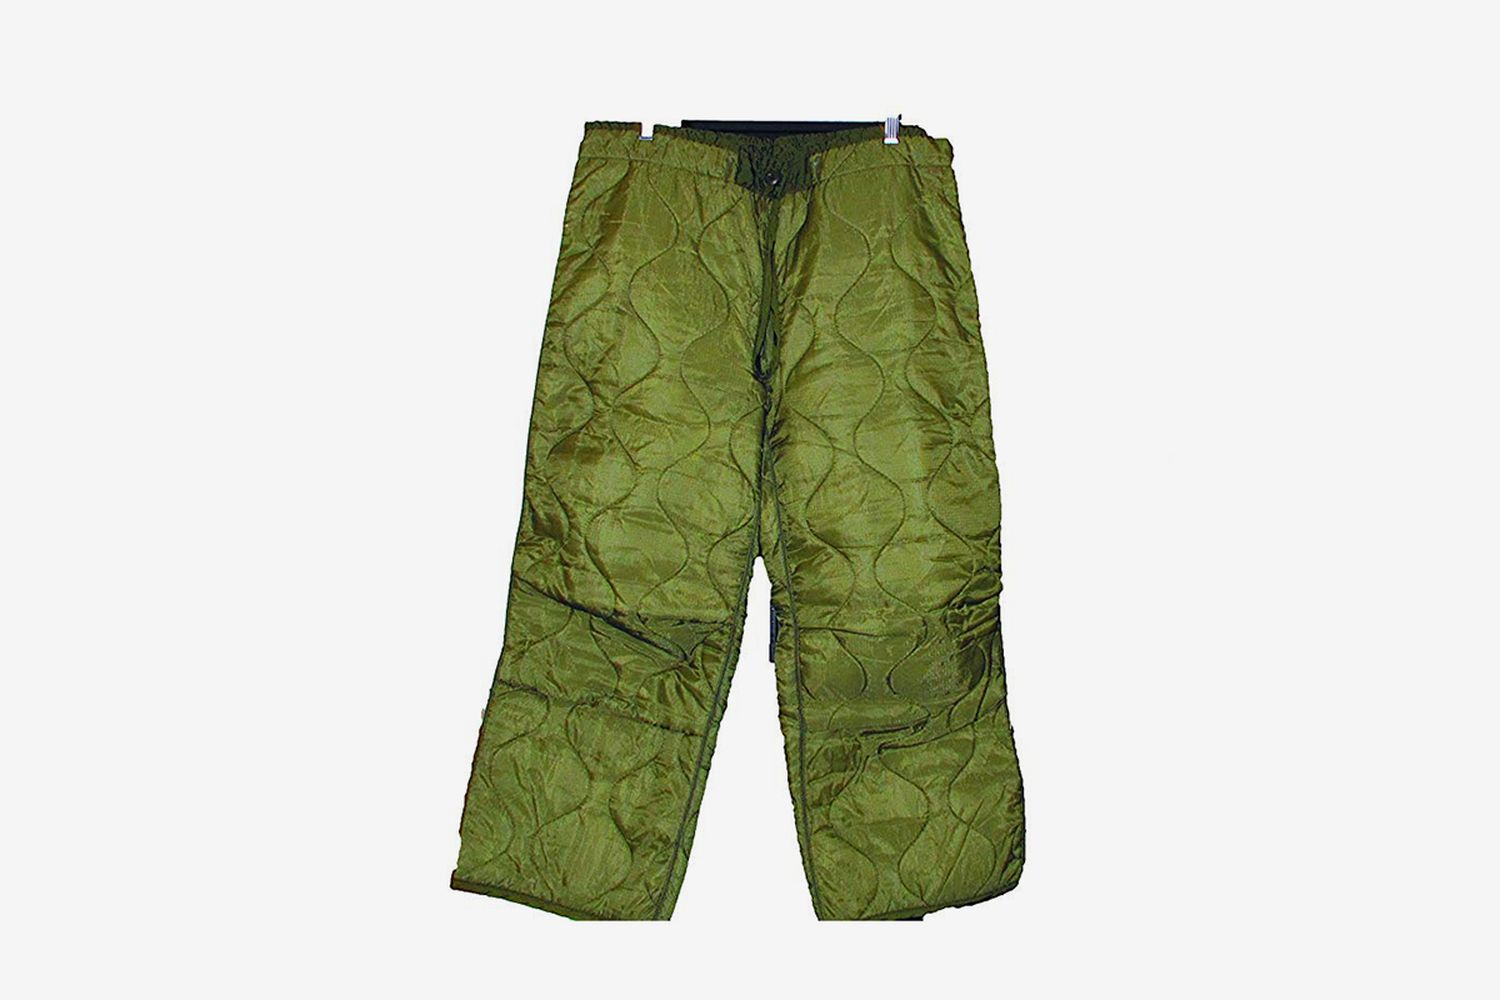 Military Field Pant Liner